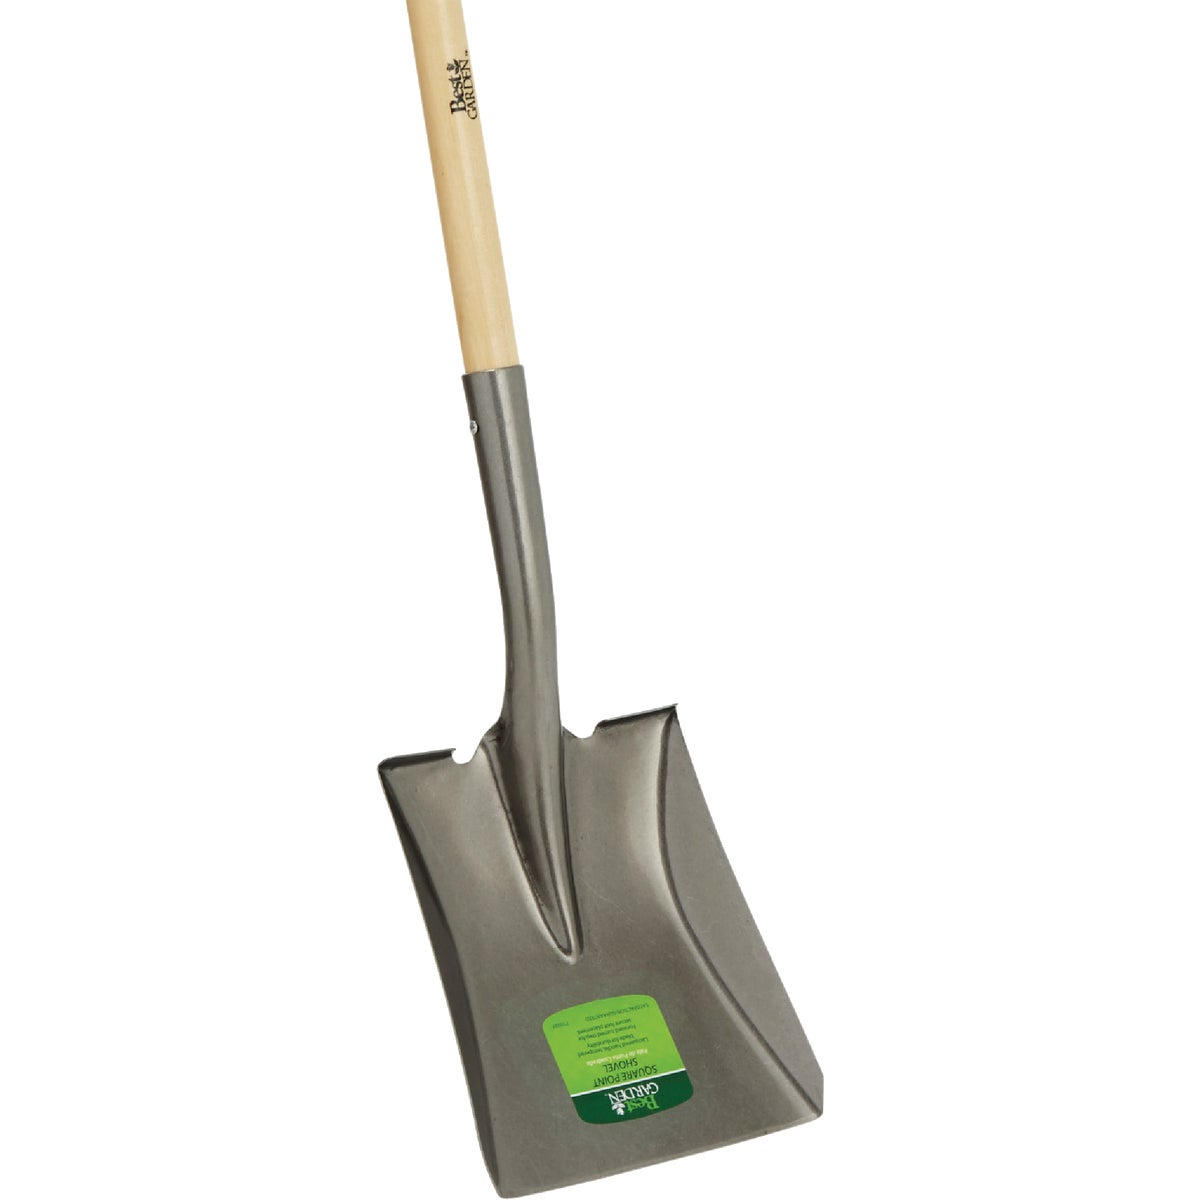 LONG HDL SQ PT SHOVEL